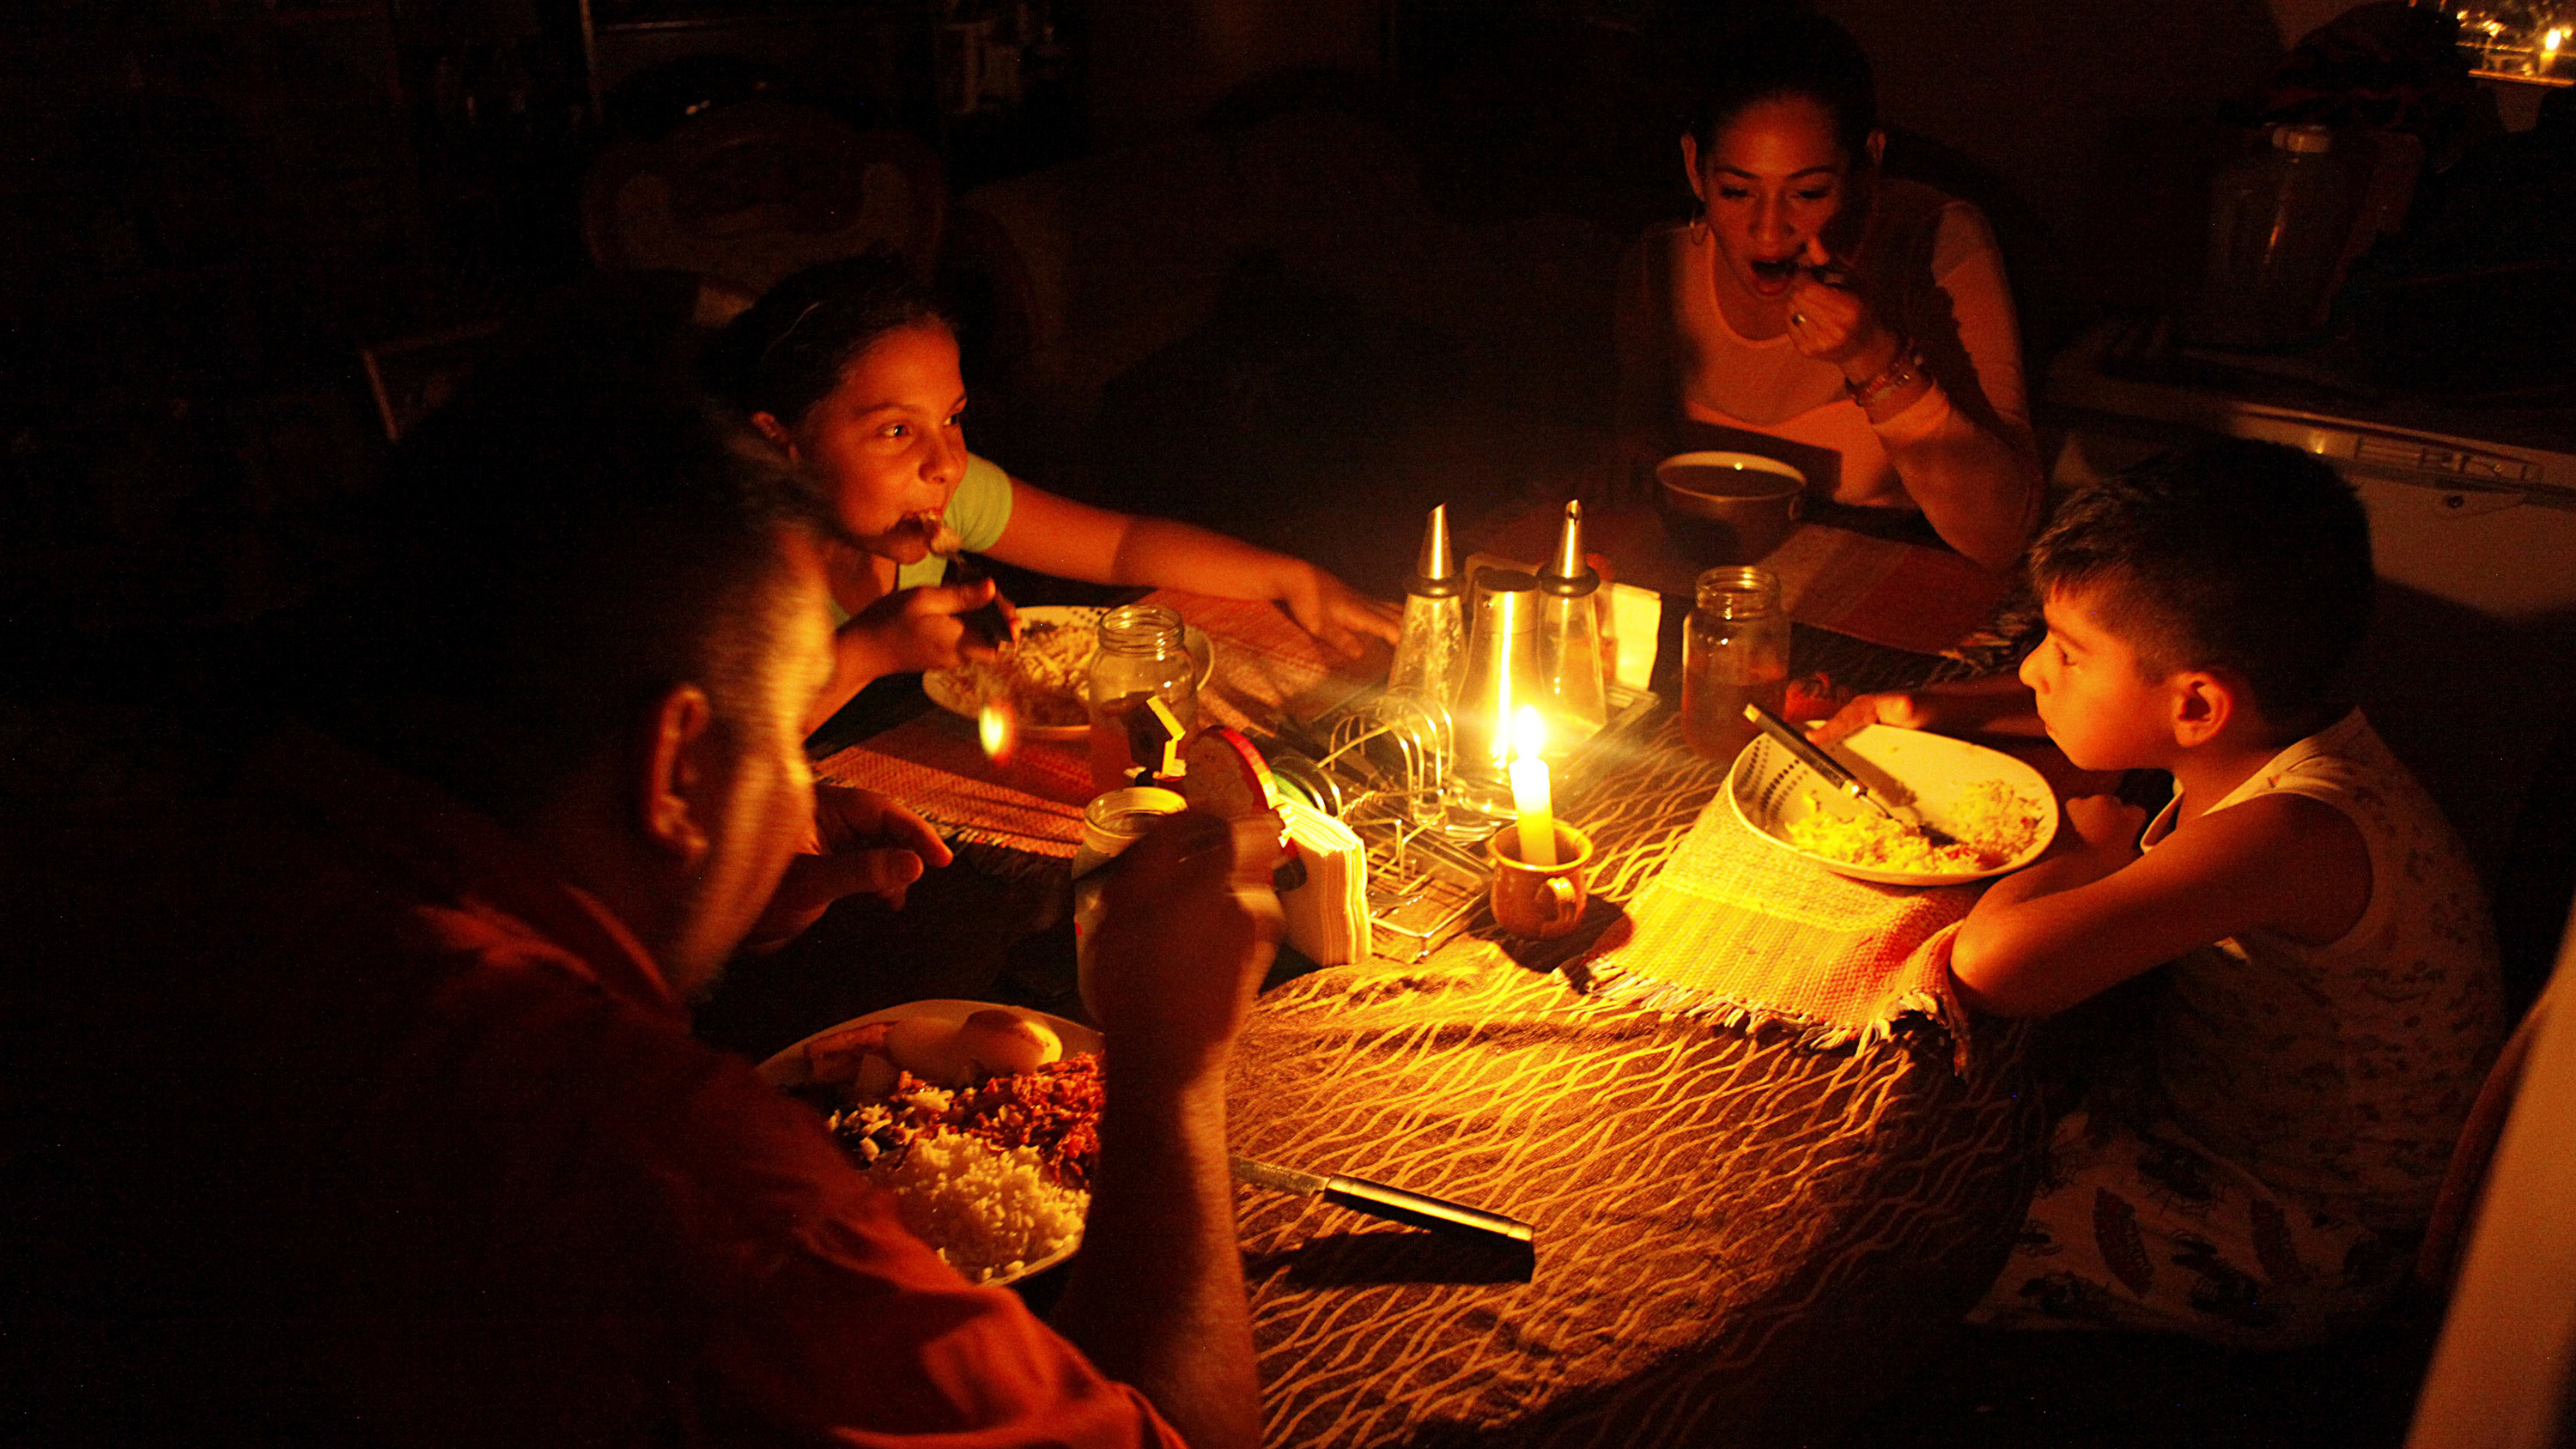 Lisney Albornoz (2nd R) and her family use a candle to illuminate the table while they dine, during a blackout in San Cristobal, Venezuela March 14, 2018. Picture taken March 14, 2018. REUTERS/Carlos Eduardo Ramirez - RC150CC4ECC0